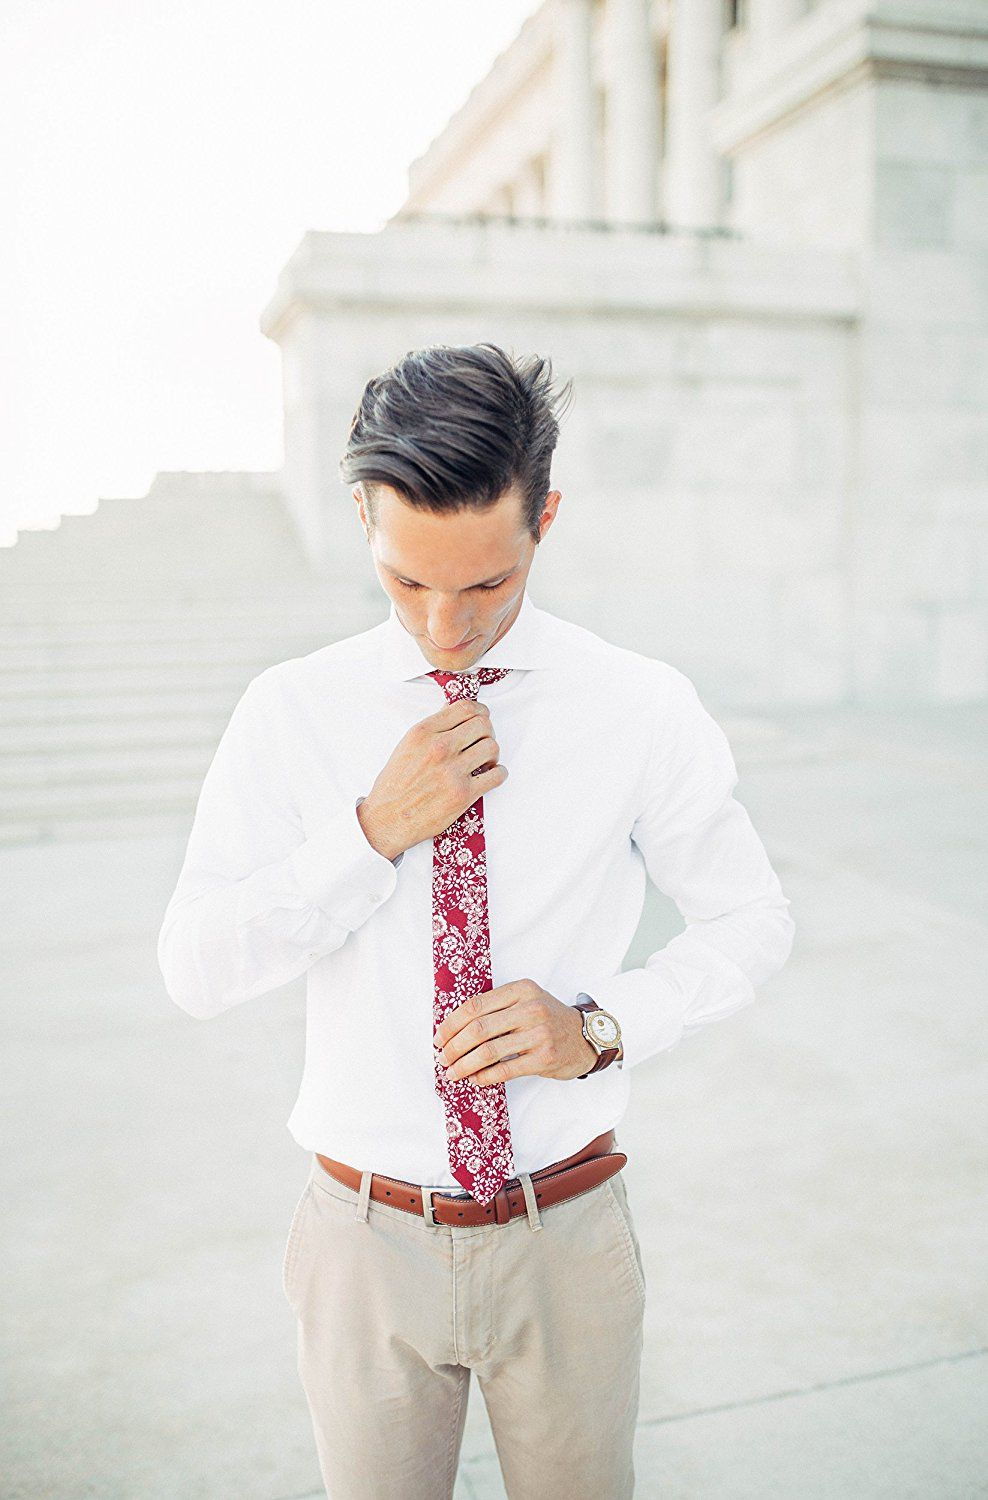 Pursuit Apparel Skinny Tie Hand Made Men's Cotton Printed Floral Neck Tie (Banzai) at Amazon Men's Clothing store: